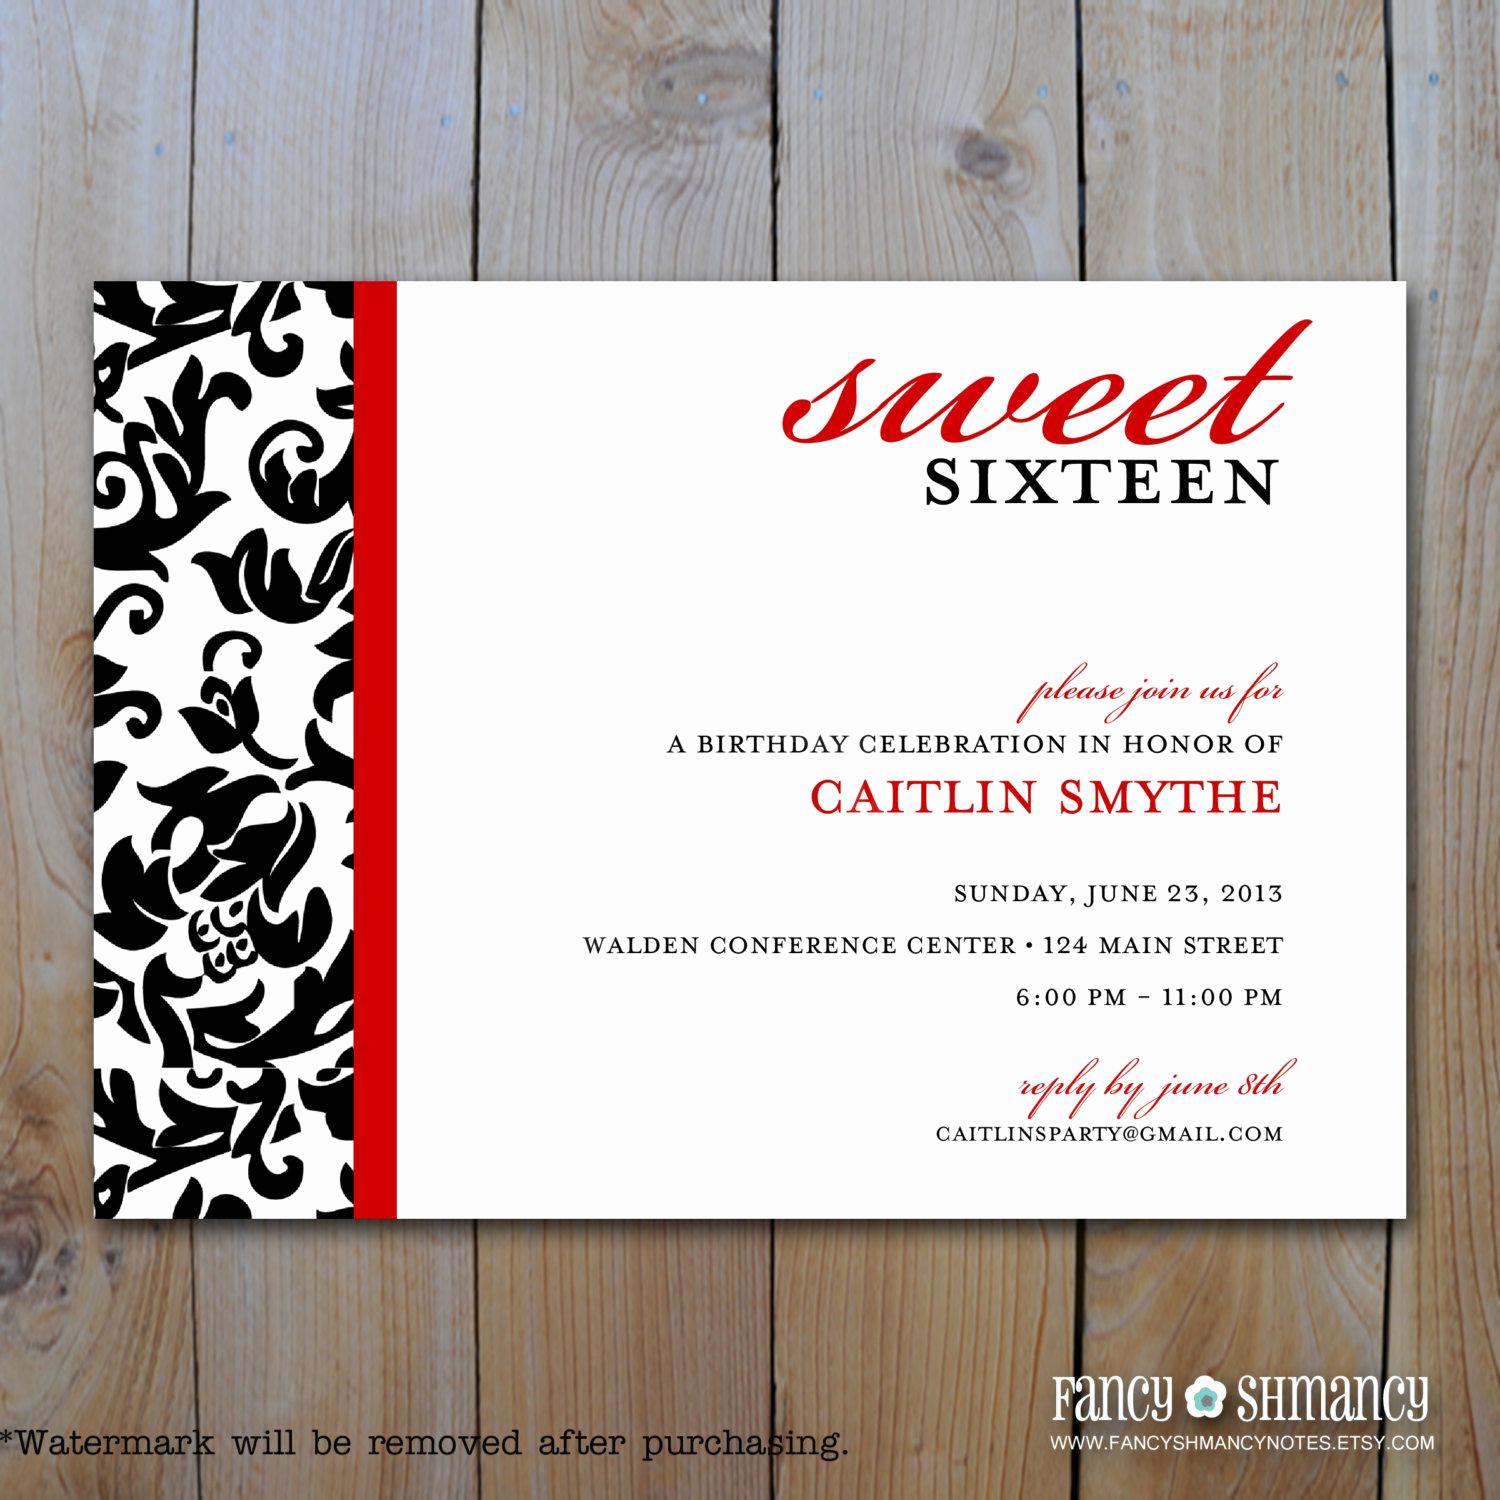 Sweet 16 Invitation Ideas Inspirational Birthday Party Sweet 16 Birthday Invitations Templates